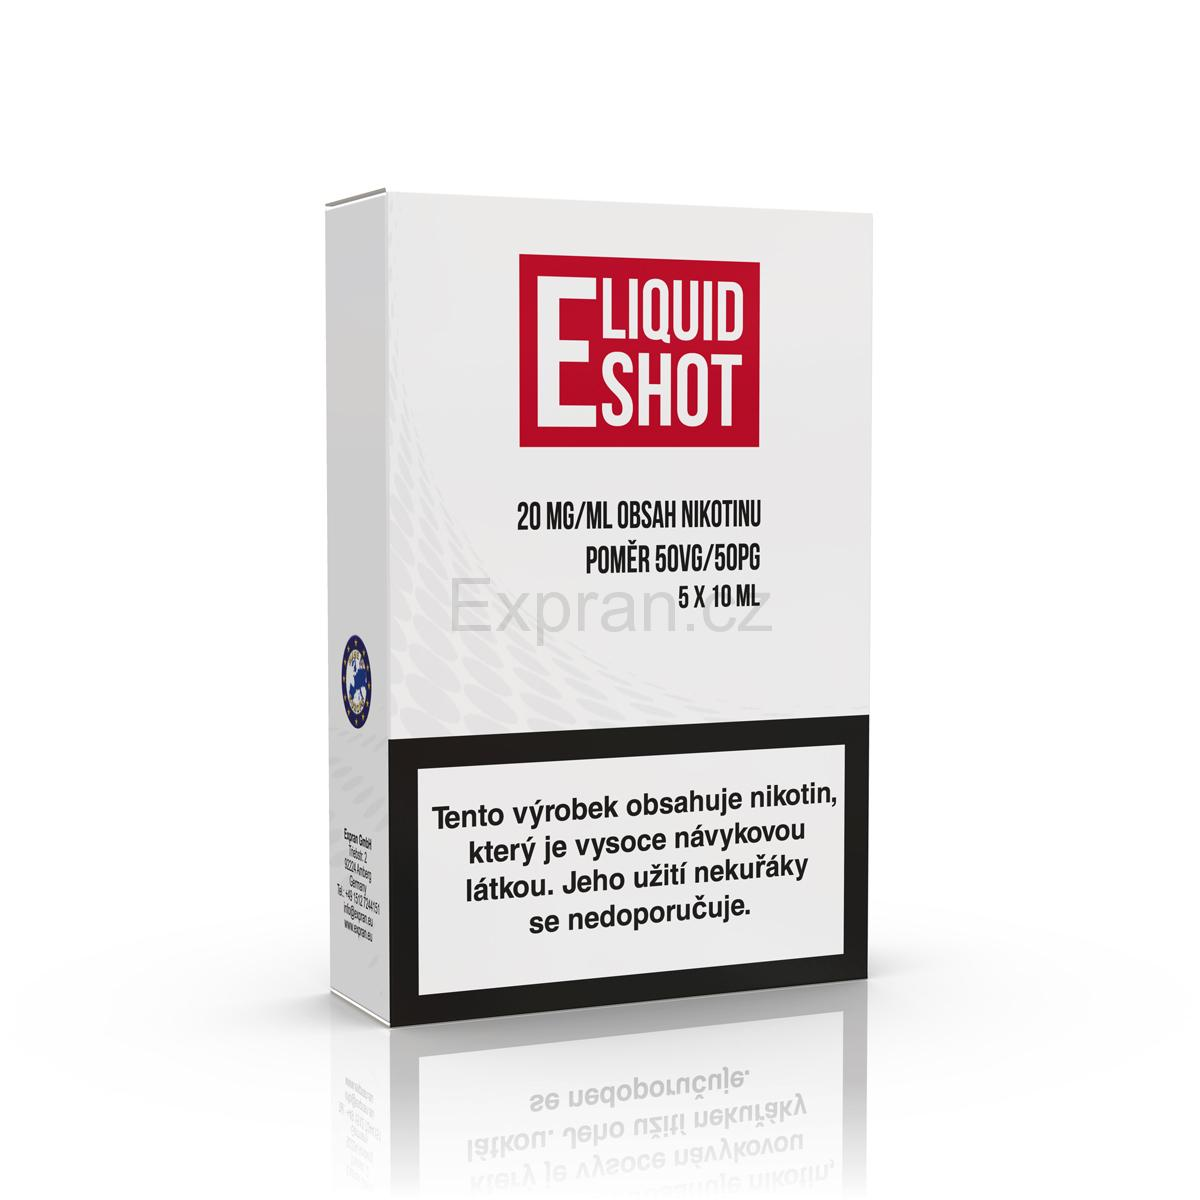 5 pack E-Liquid Shot Booster 50PG/50VG 20 mg/ml